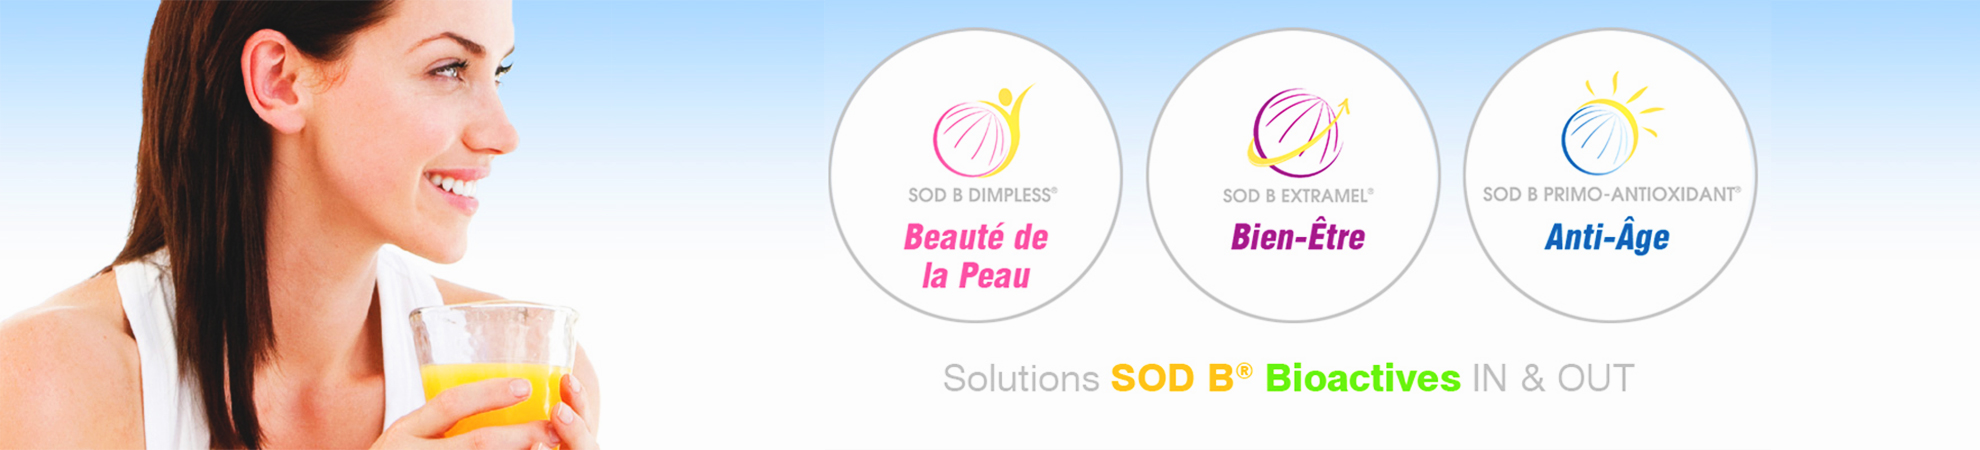 Solutions SOD B bioactives in & out